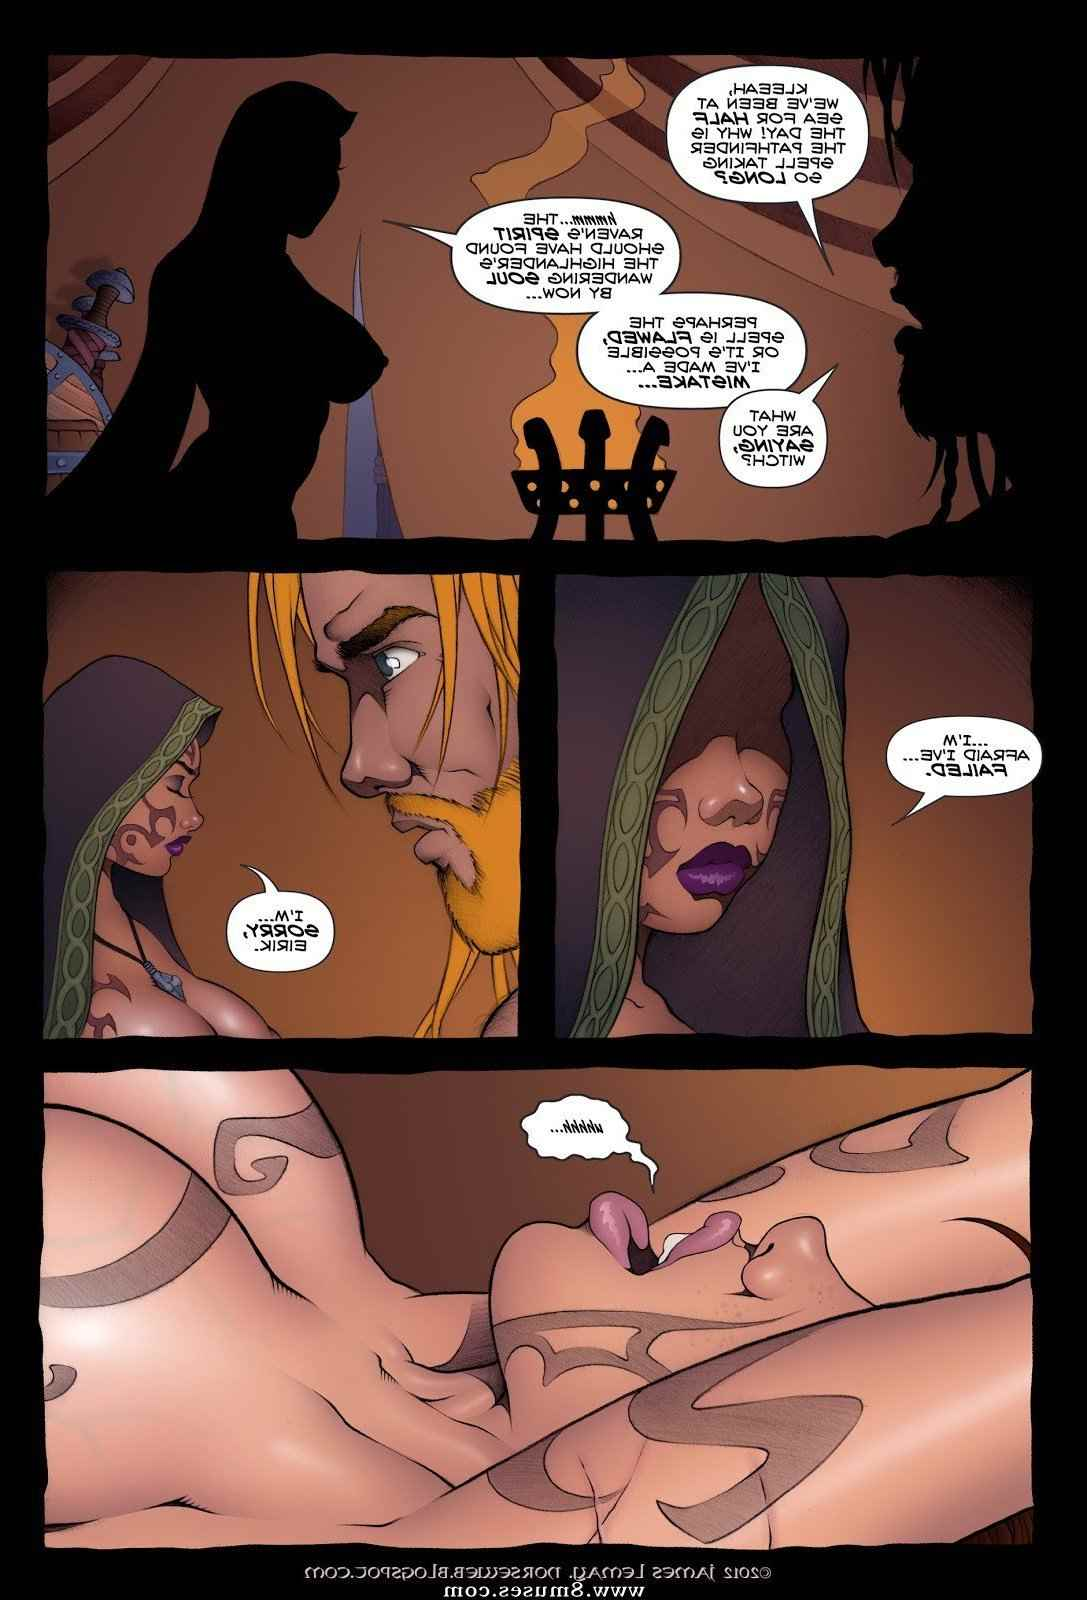 James-Lemay-Comics/Norse-Dawn-of-The-Shield-Maiden Norse_Dawn_of_The_Shield_Maiden__8muses_-_Sex_and_Porn_Comics_41.jpg